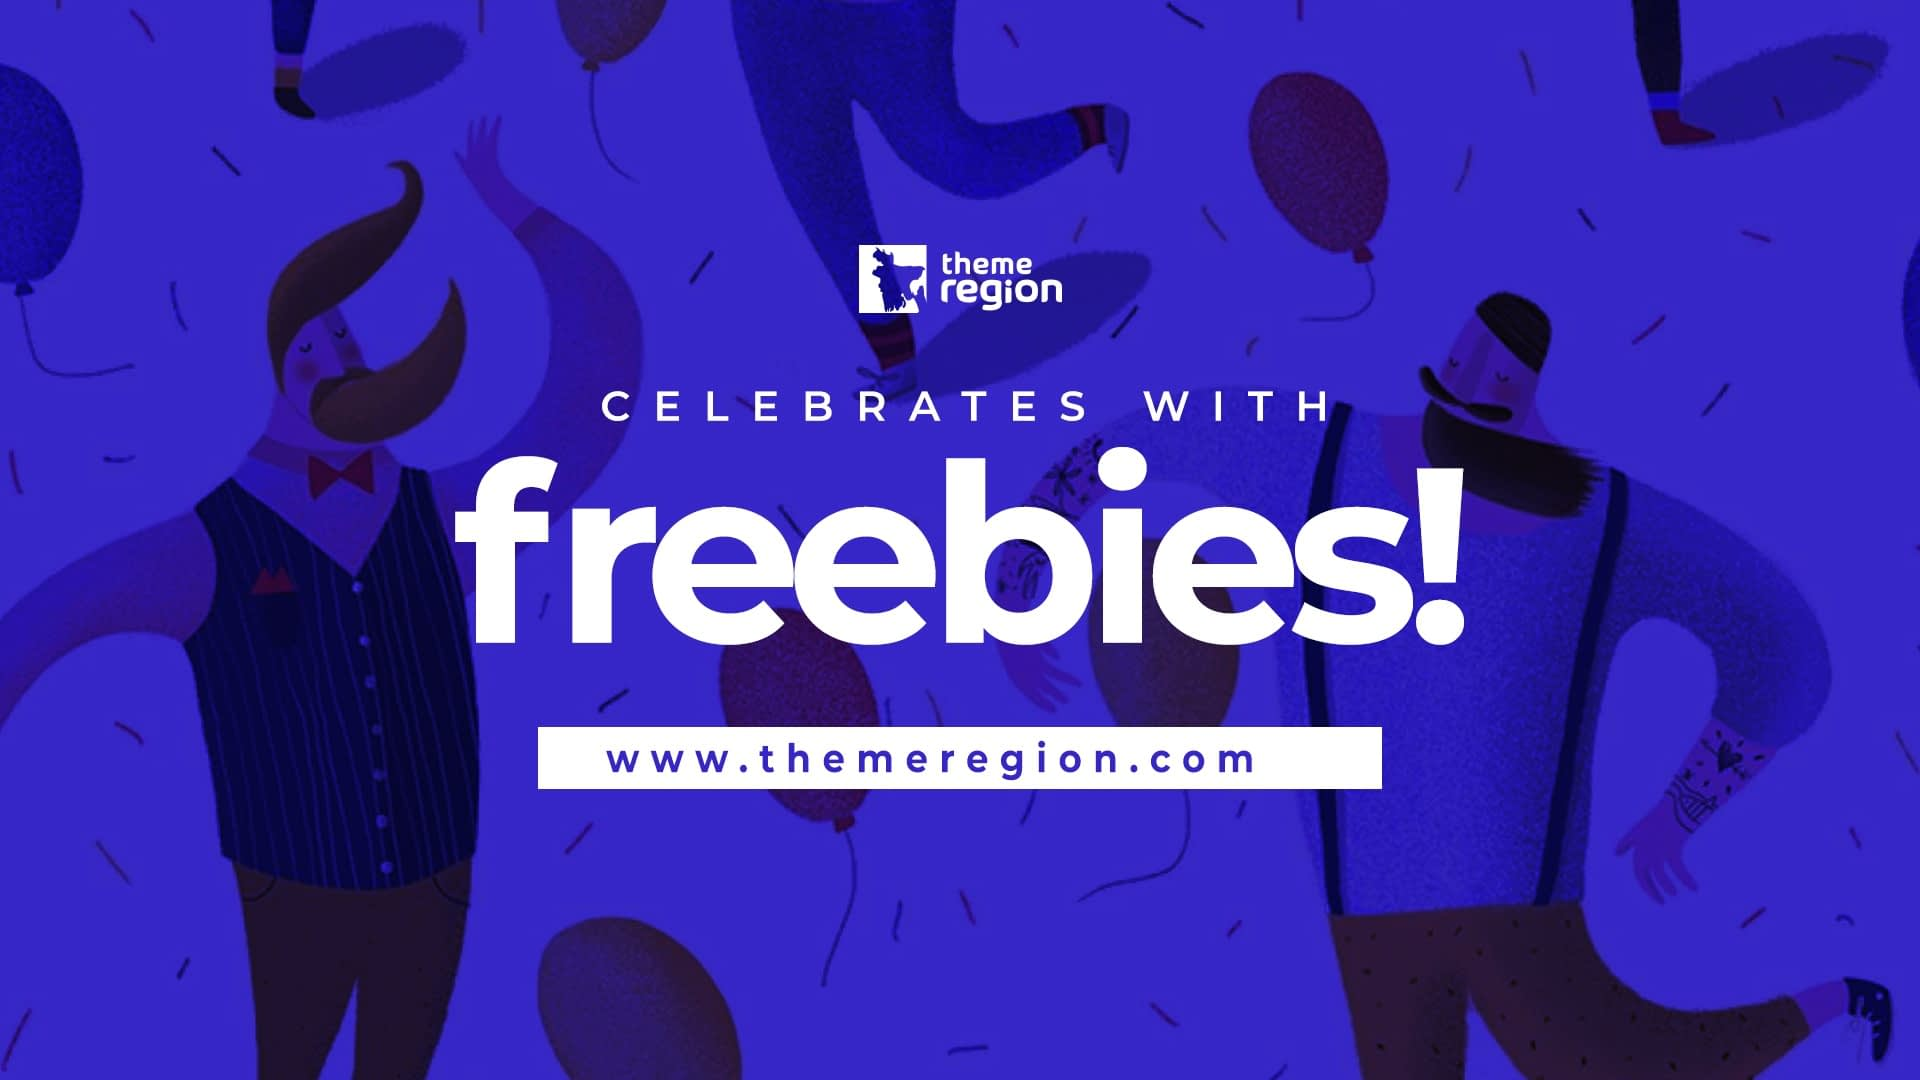 ThemeRegion comes with a new design; celebrates with freebies!